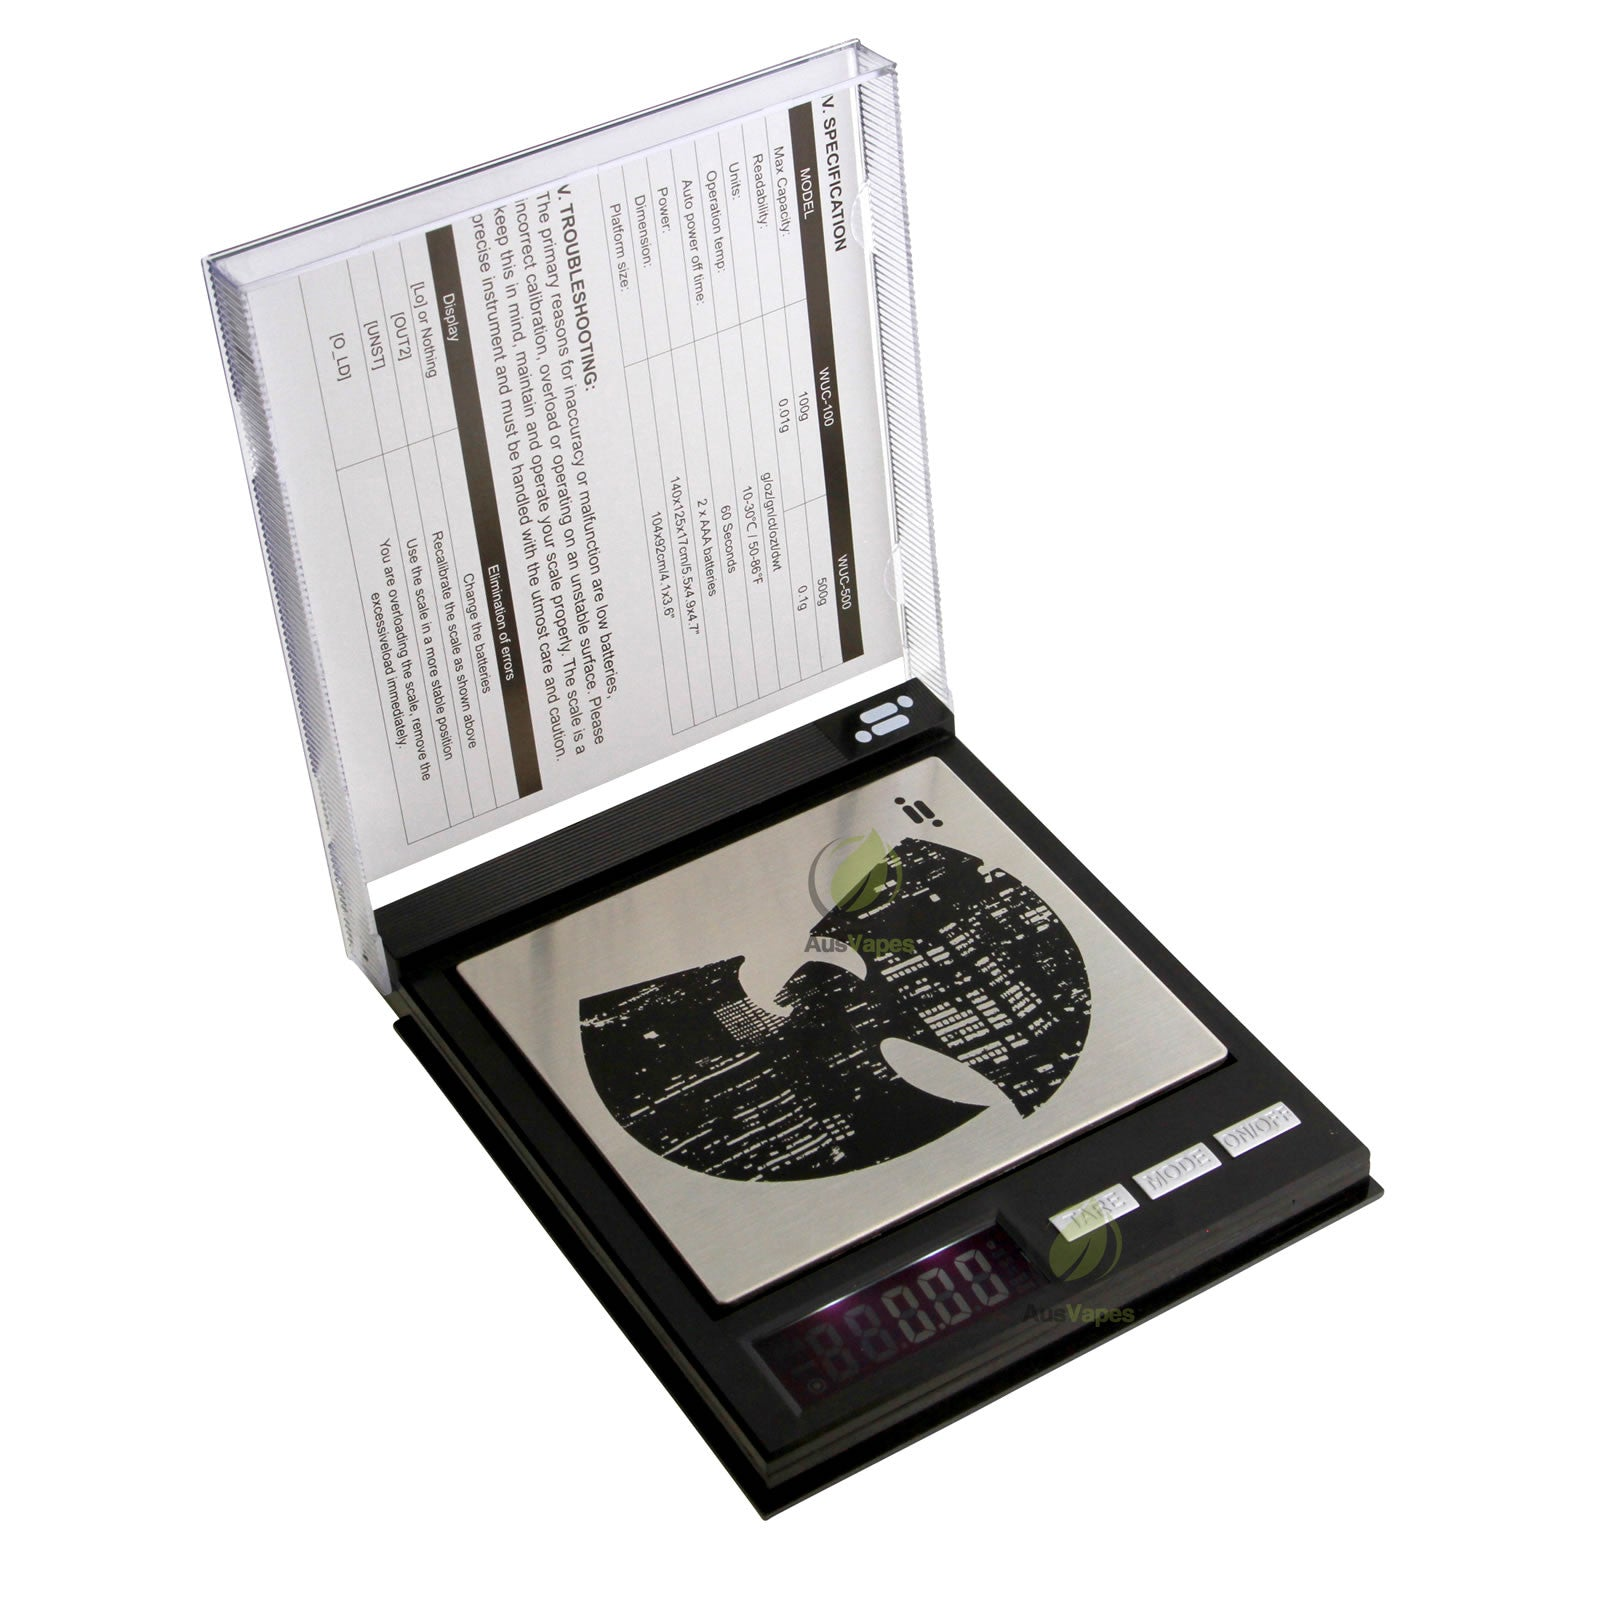 DISCONTINUED Infyniti Wu-Tang Clan CD Digital Scale 500g x 0.1g